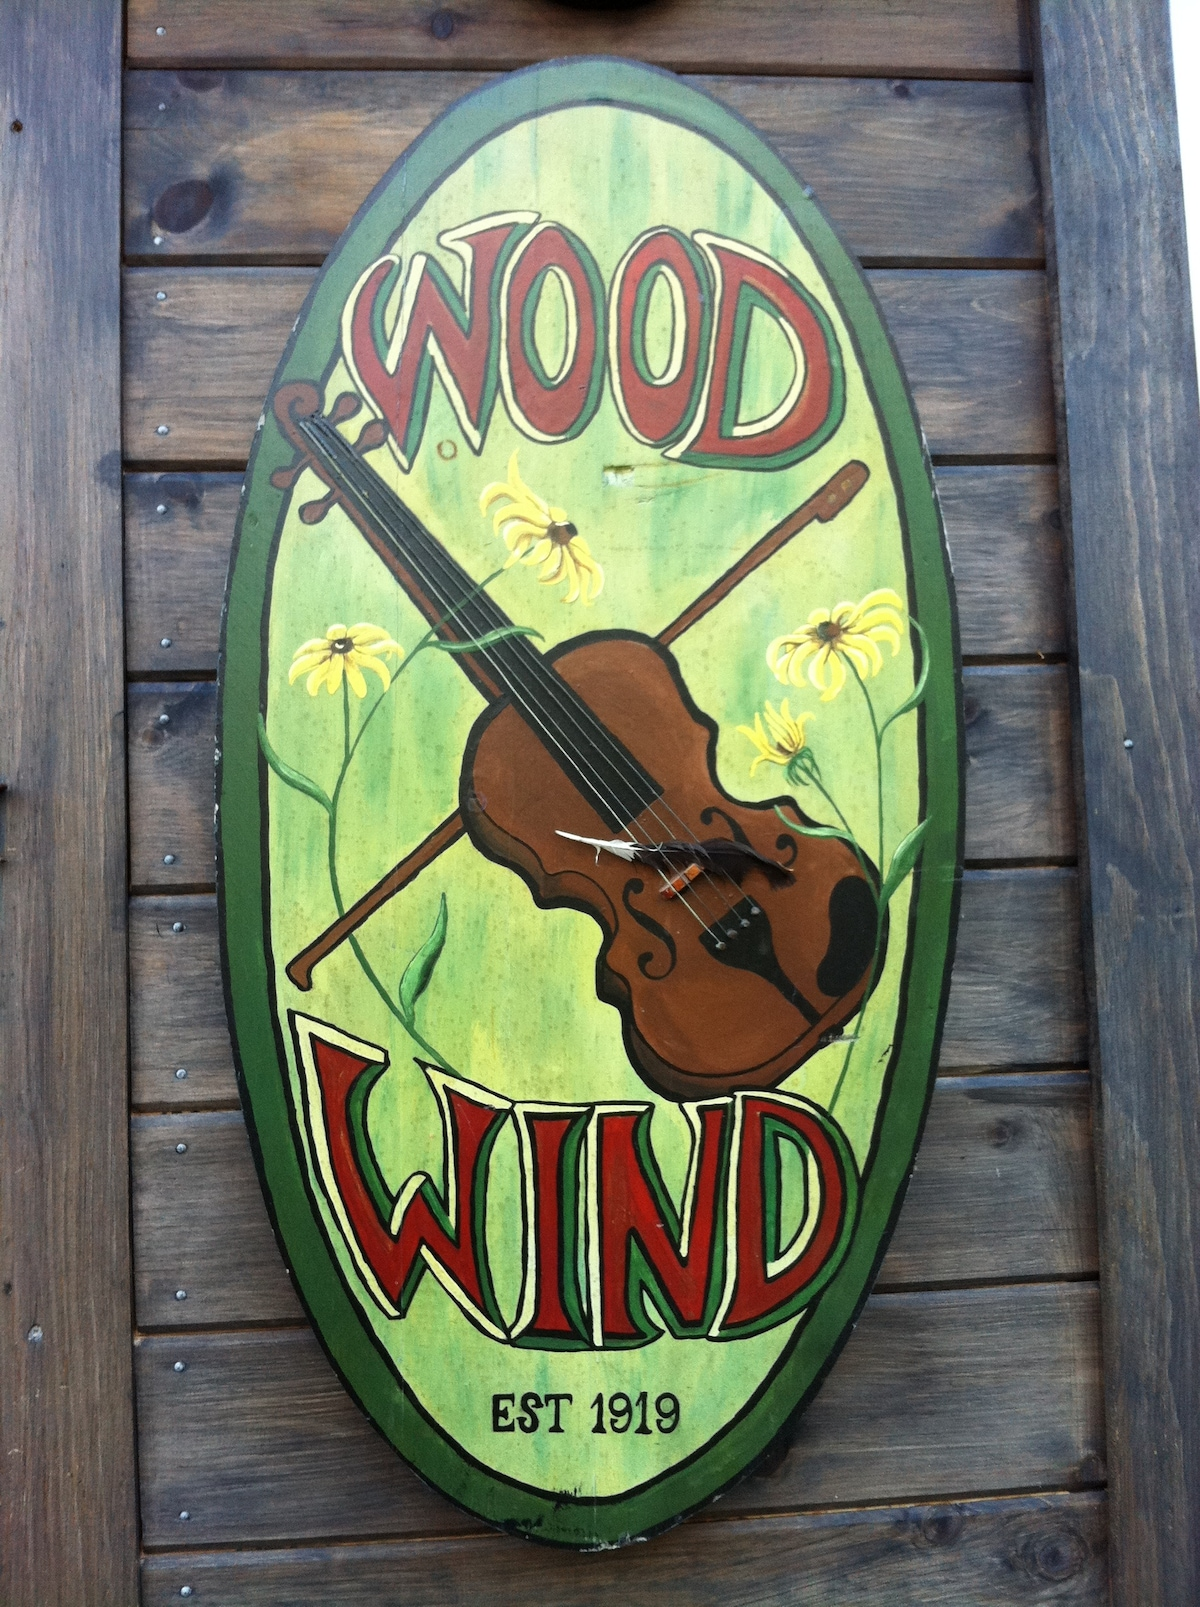 My own hand painted wood sign, inspired by my Grandfather who was first violin for the Toronto Symphony Orchestra.